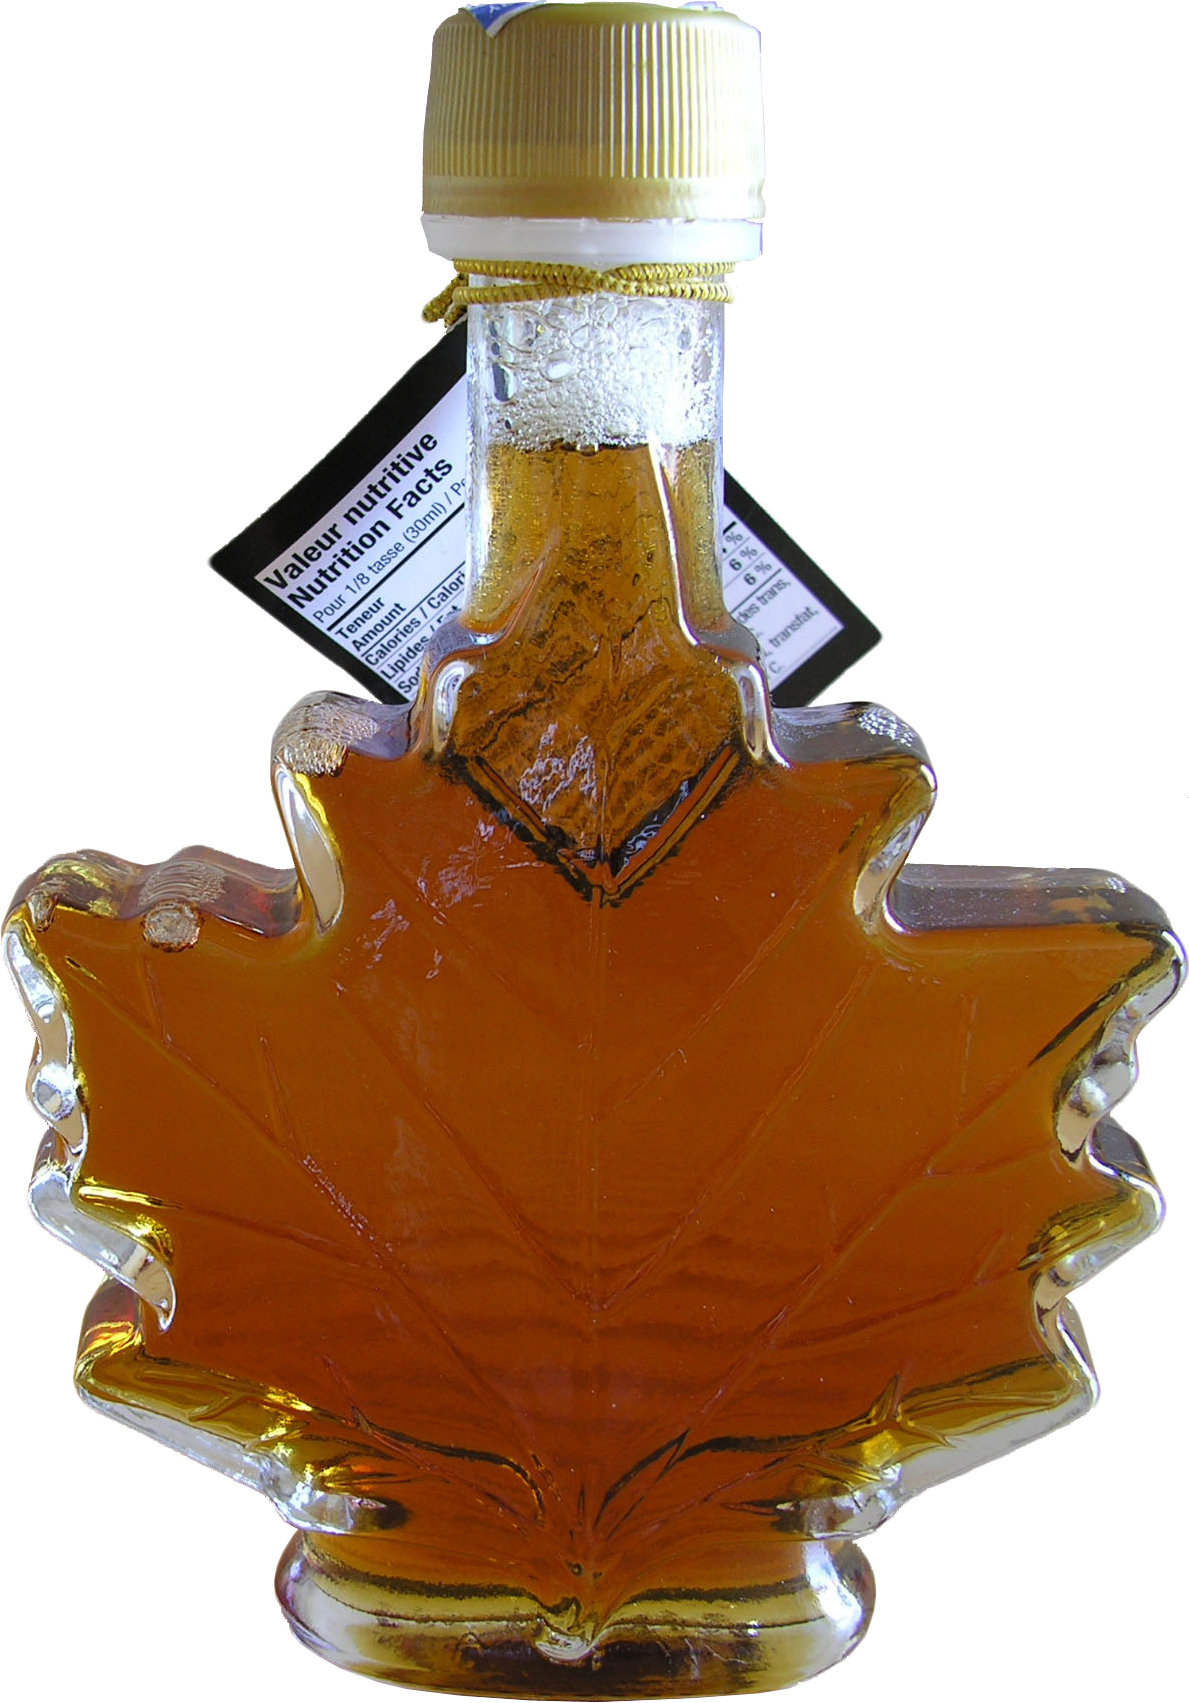 Where to get maple syrup